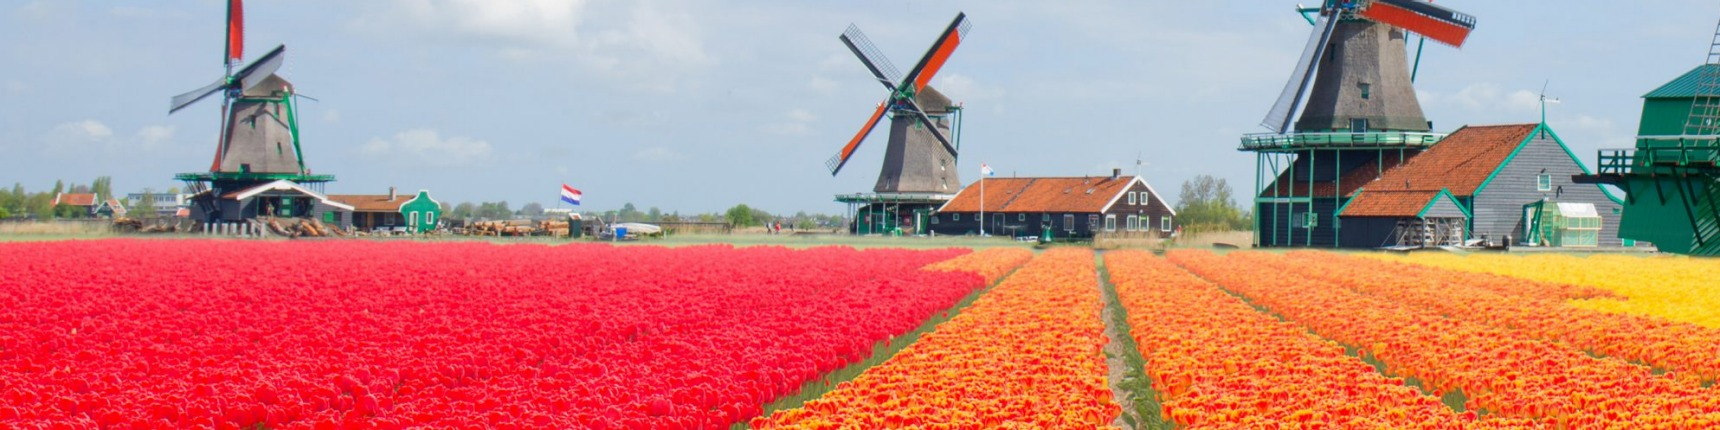 Netherlands, windmills